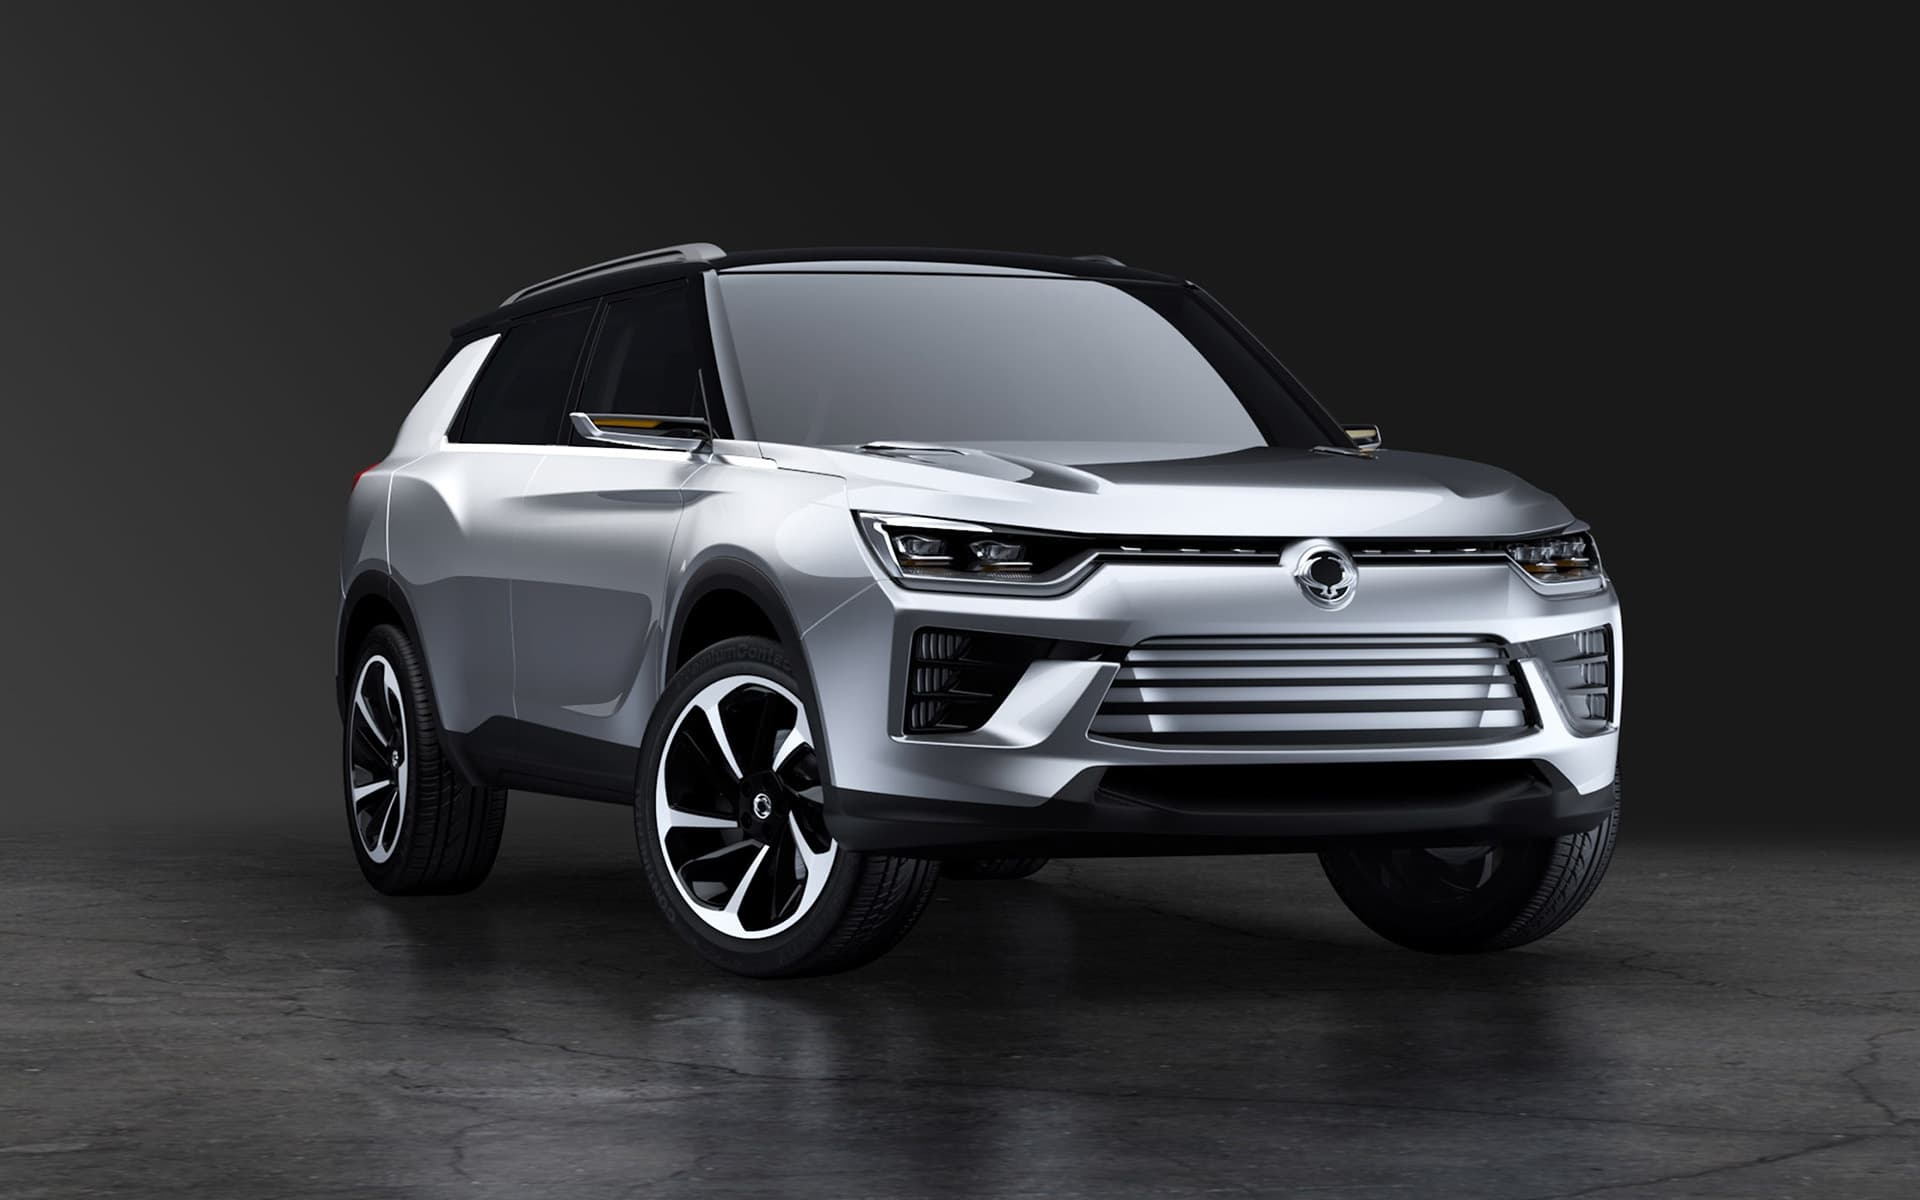 Wallpaper of 2016 SsangYong SIV 2 Concept SUV Silver High Quality